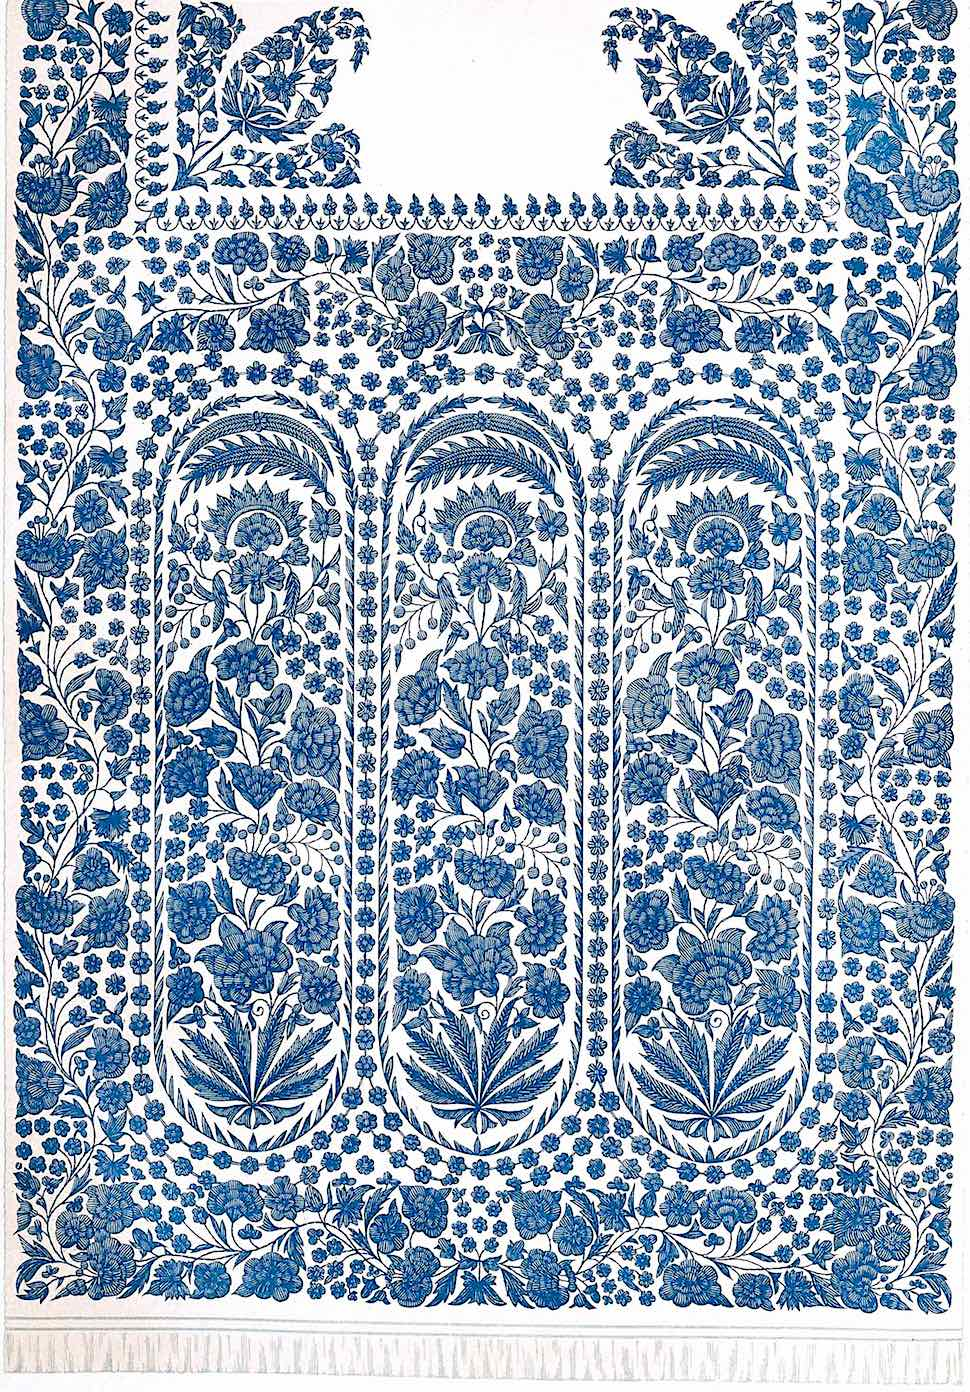 old embroidered white muslin from India, a blue illustration